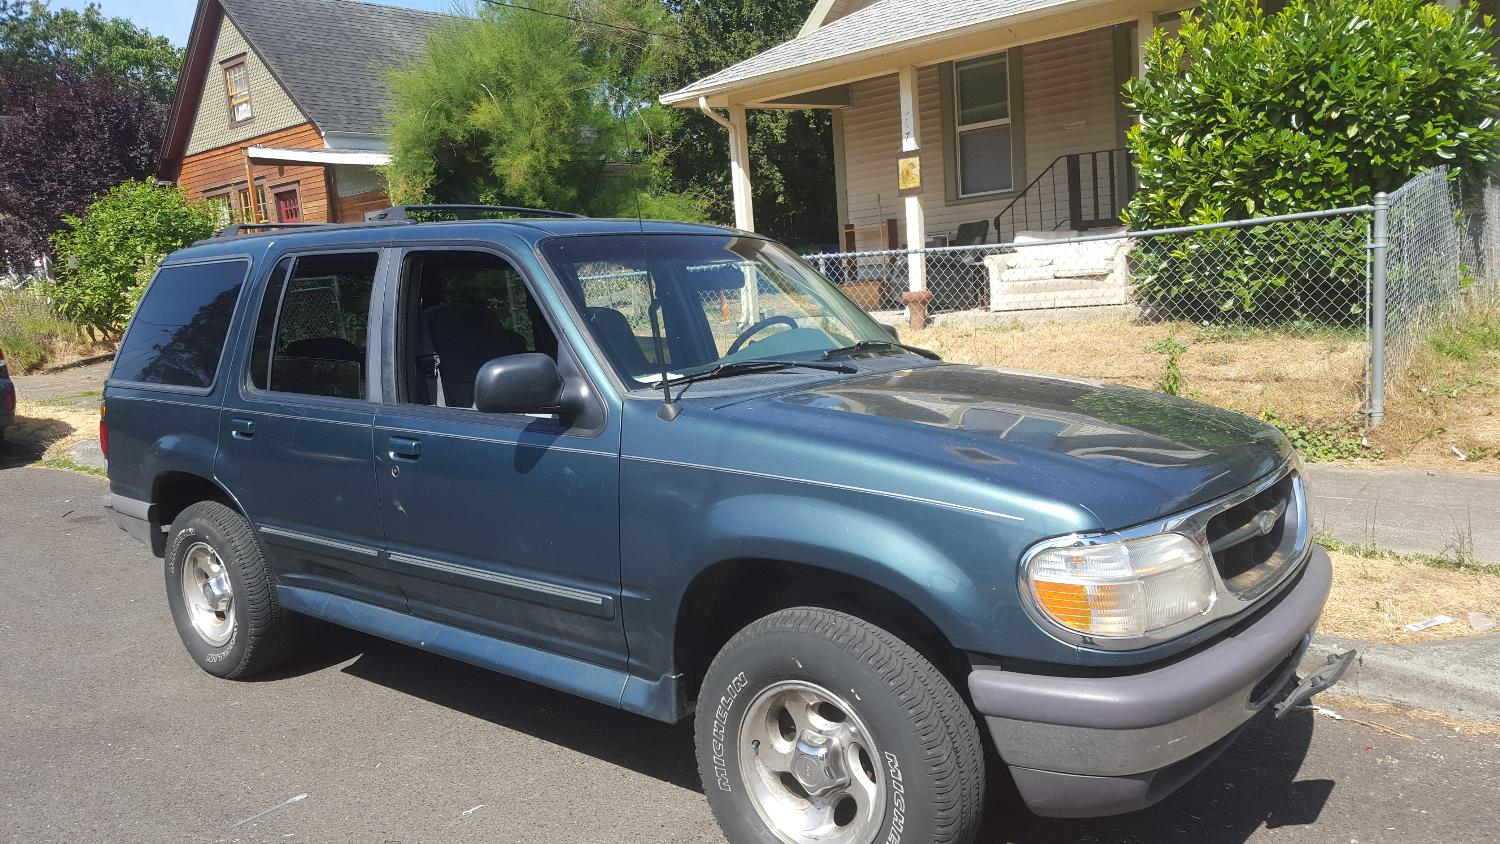 Green Ford 1996 Runs Great Just Had A Lot Of Work Done To It Tune Up And All I Need Ger Vehicle